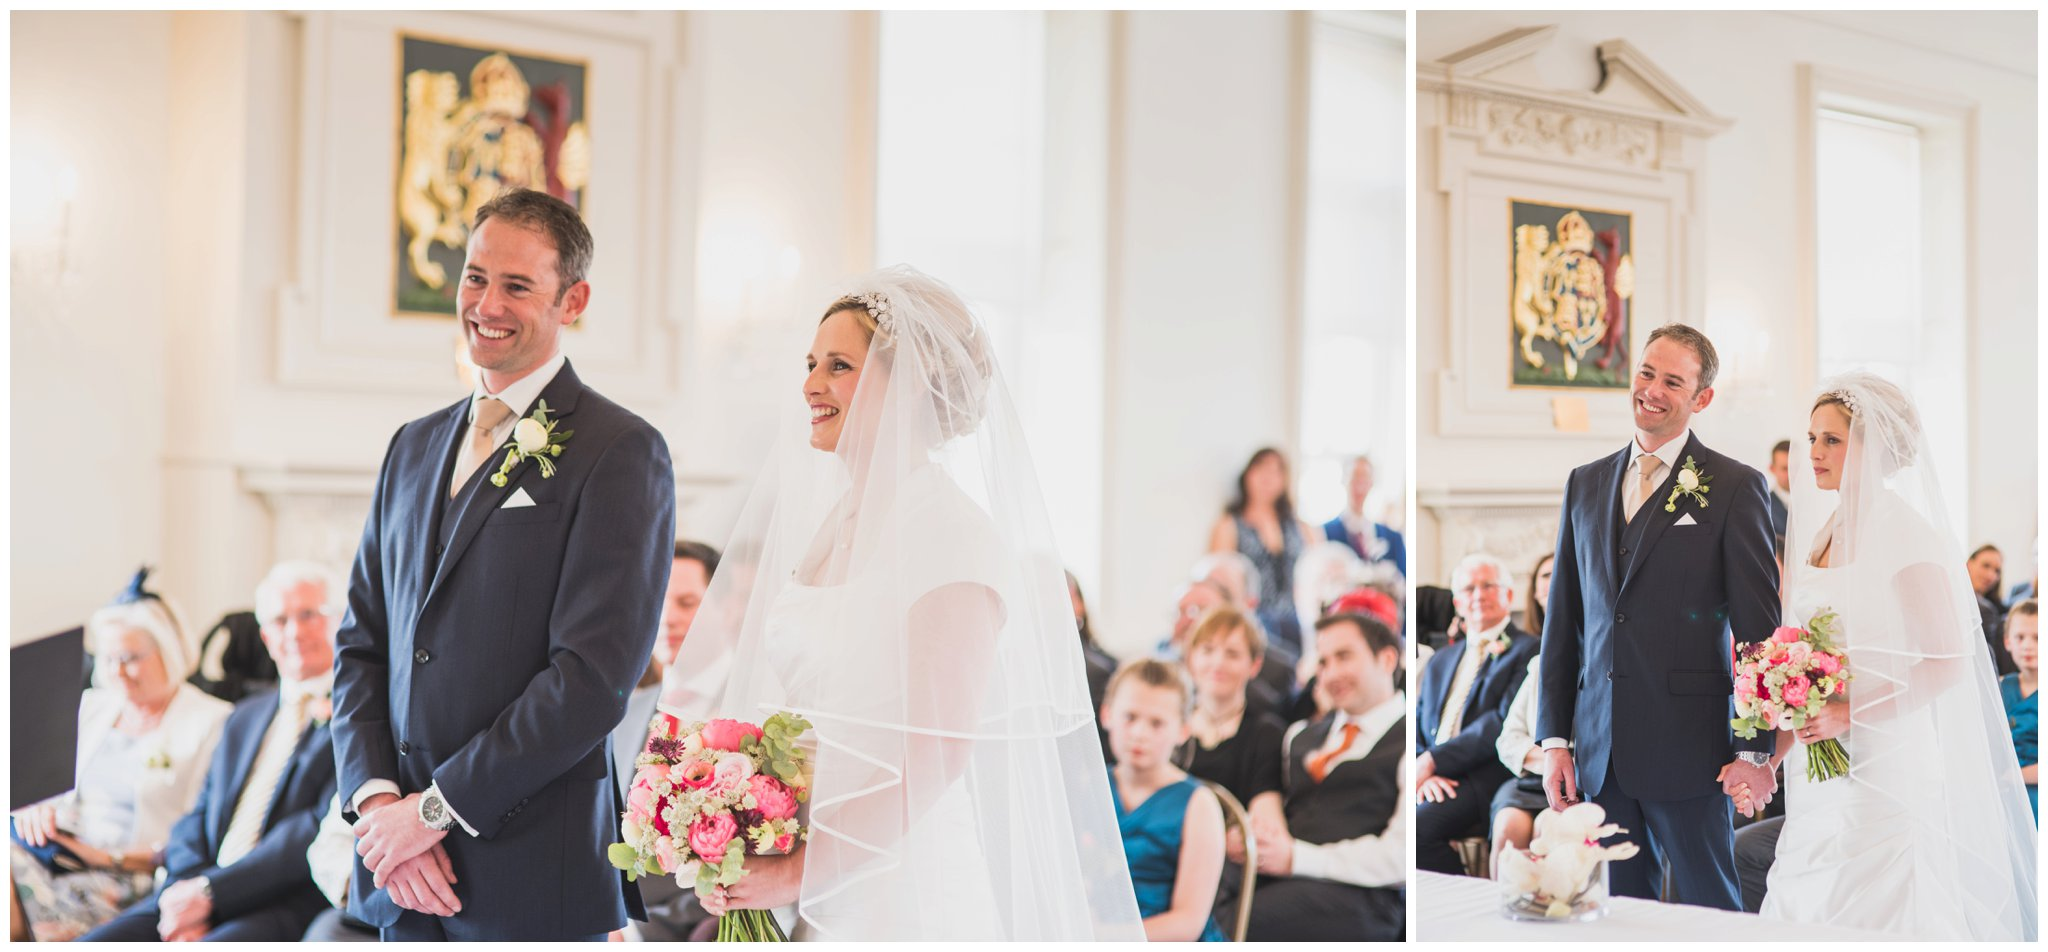 poole registry office wedding ceremony room marriage